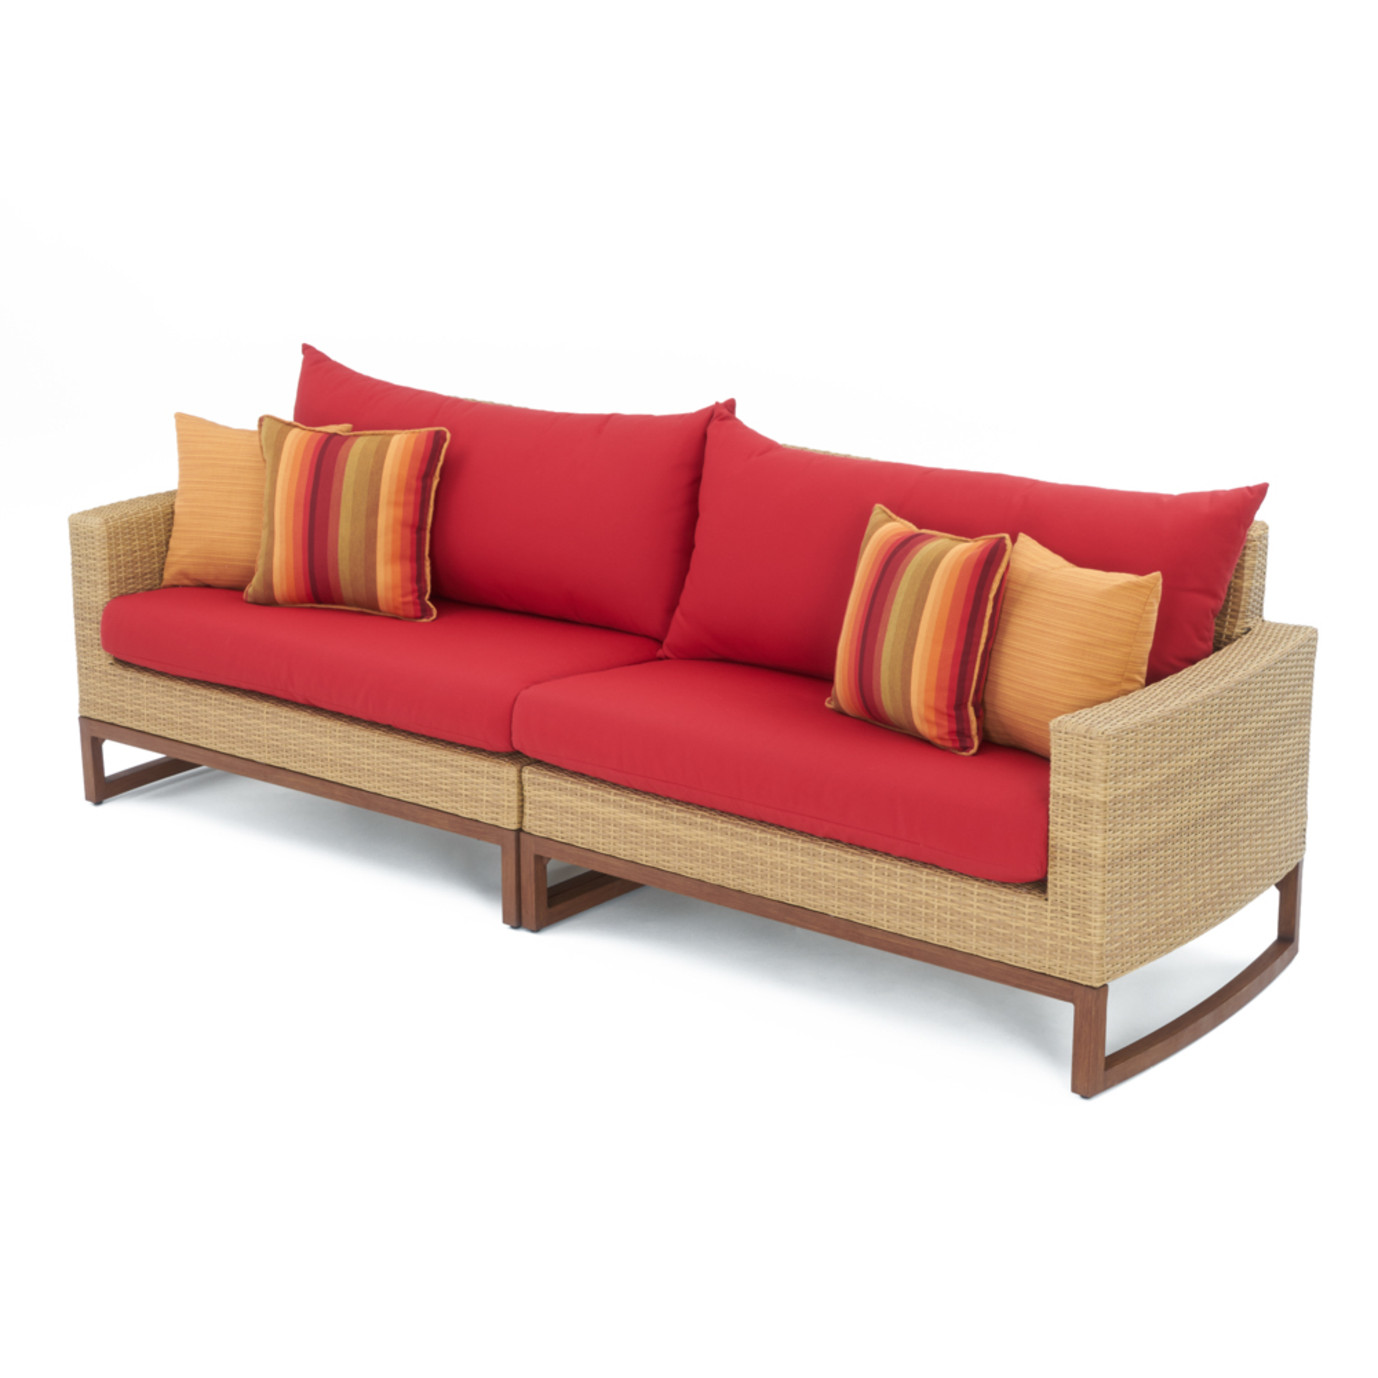 Mili™ 4 Piece Seating Set - Sunset Red